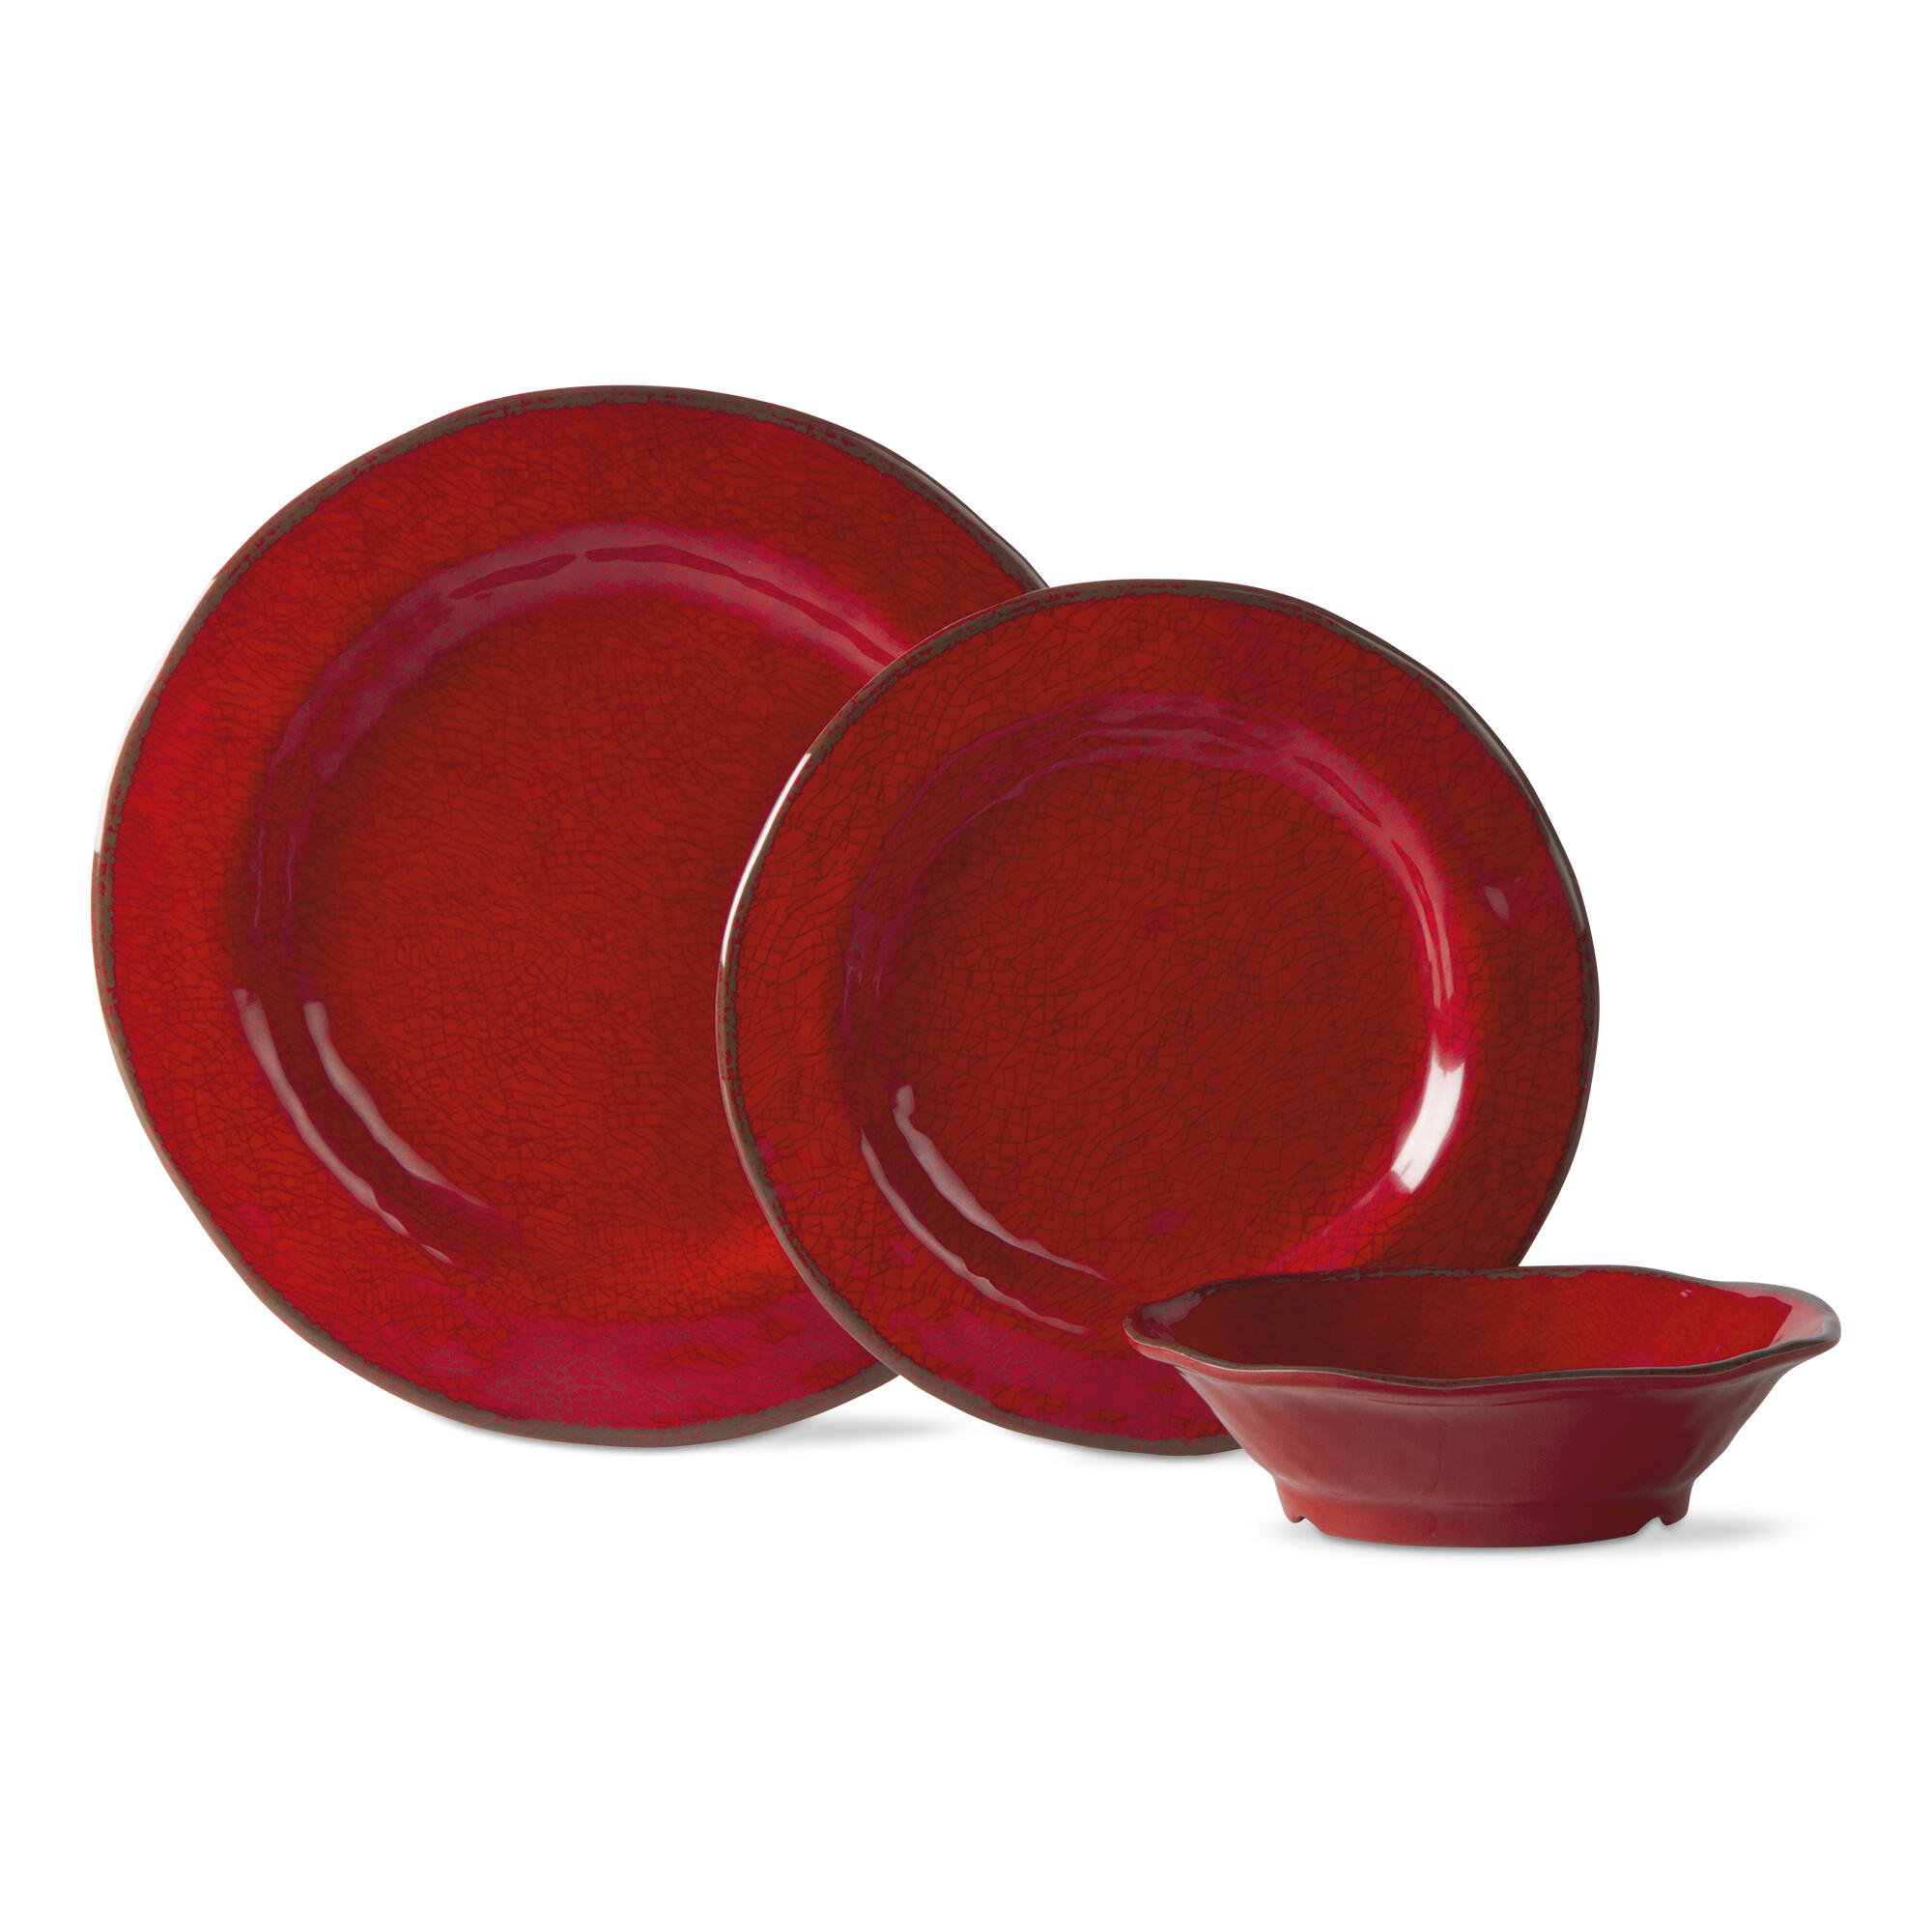 12-Pieces Lanai Melamine Red Dinnerware Set